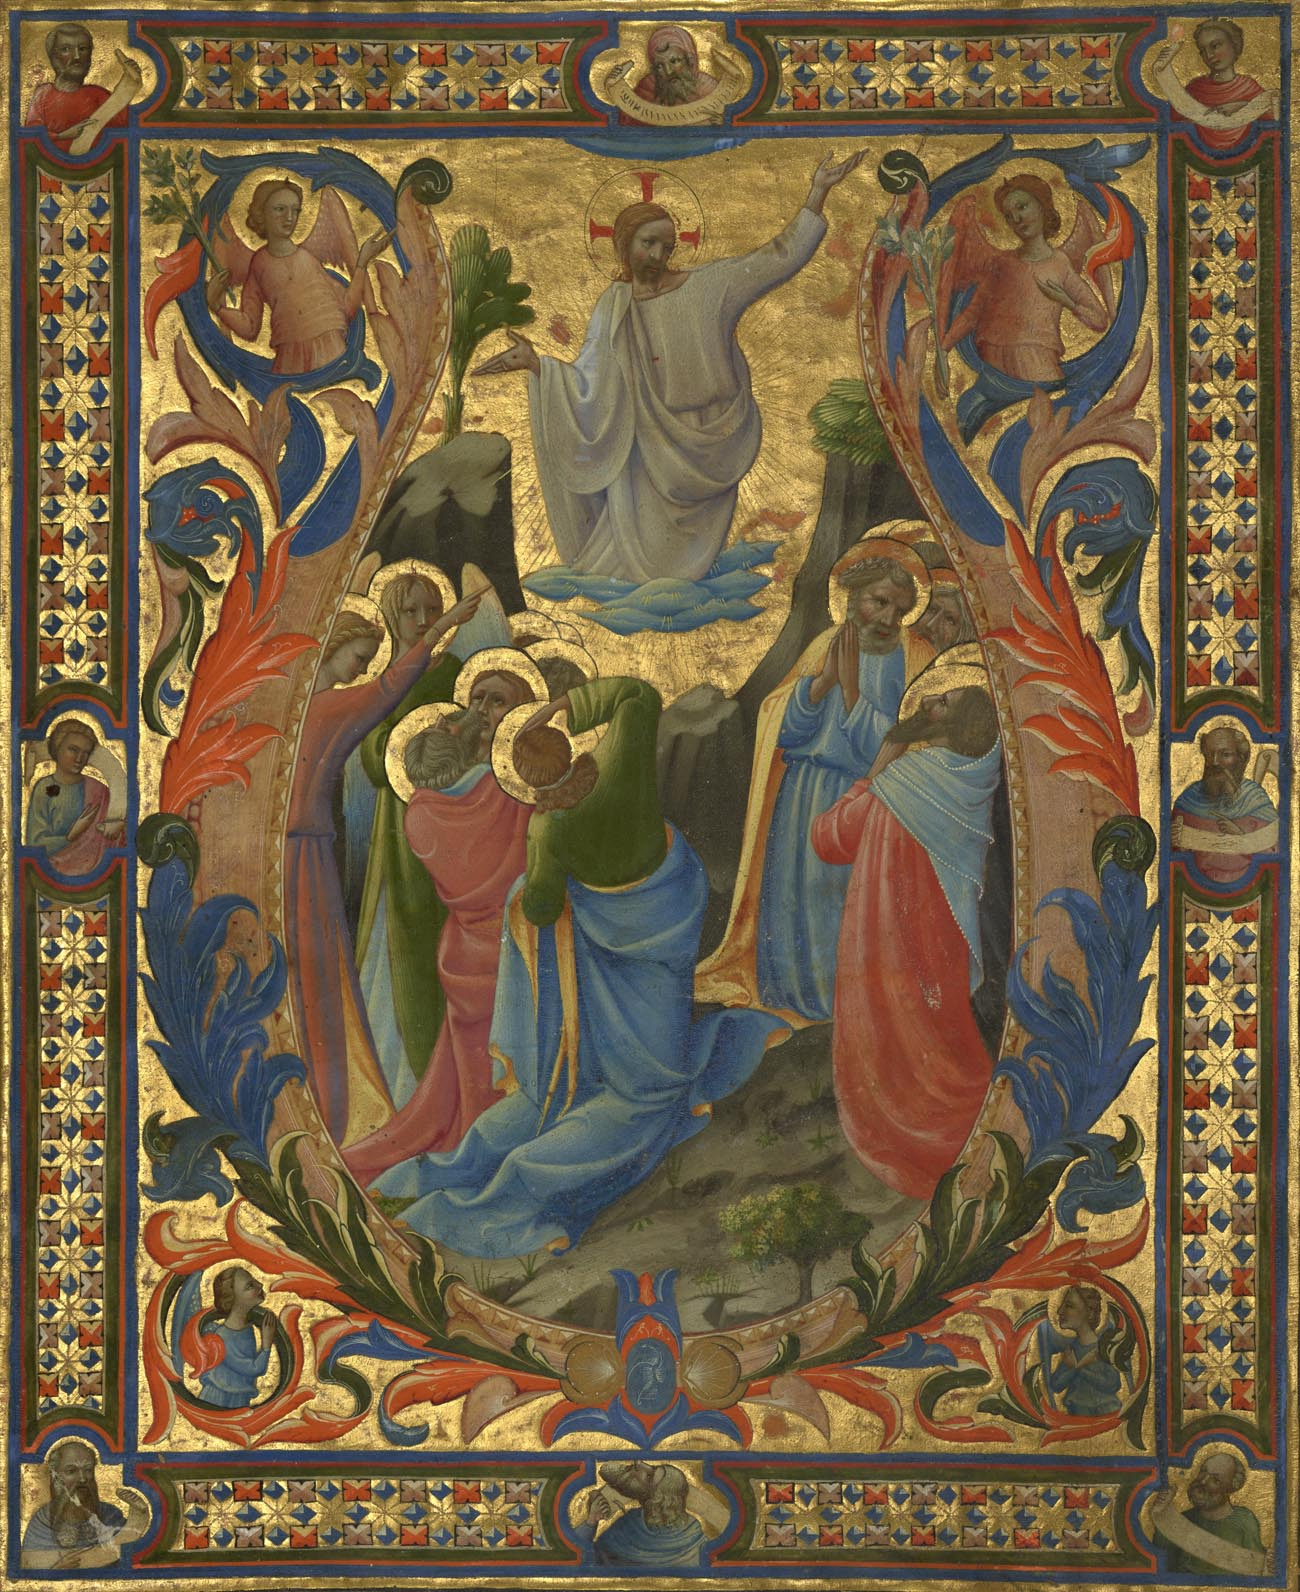 Illuminated manuscript depicting the ascension of Christ, in gold and bright tempera colors